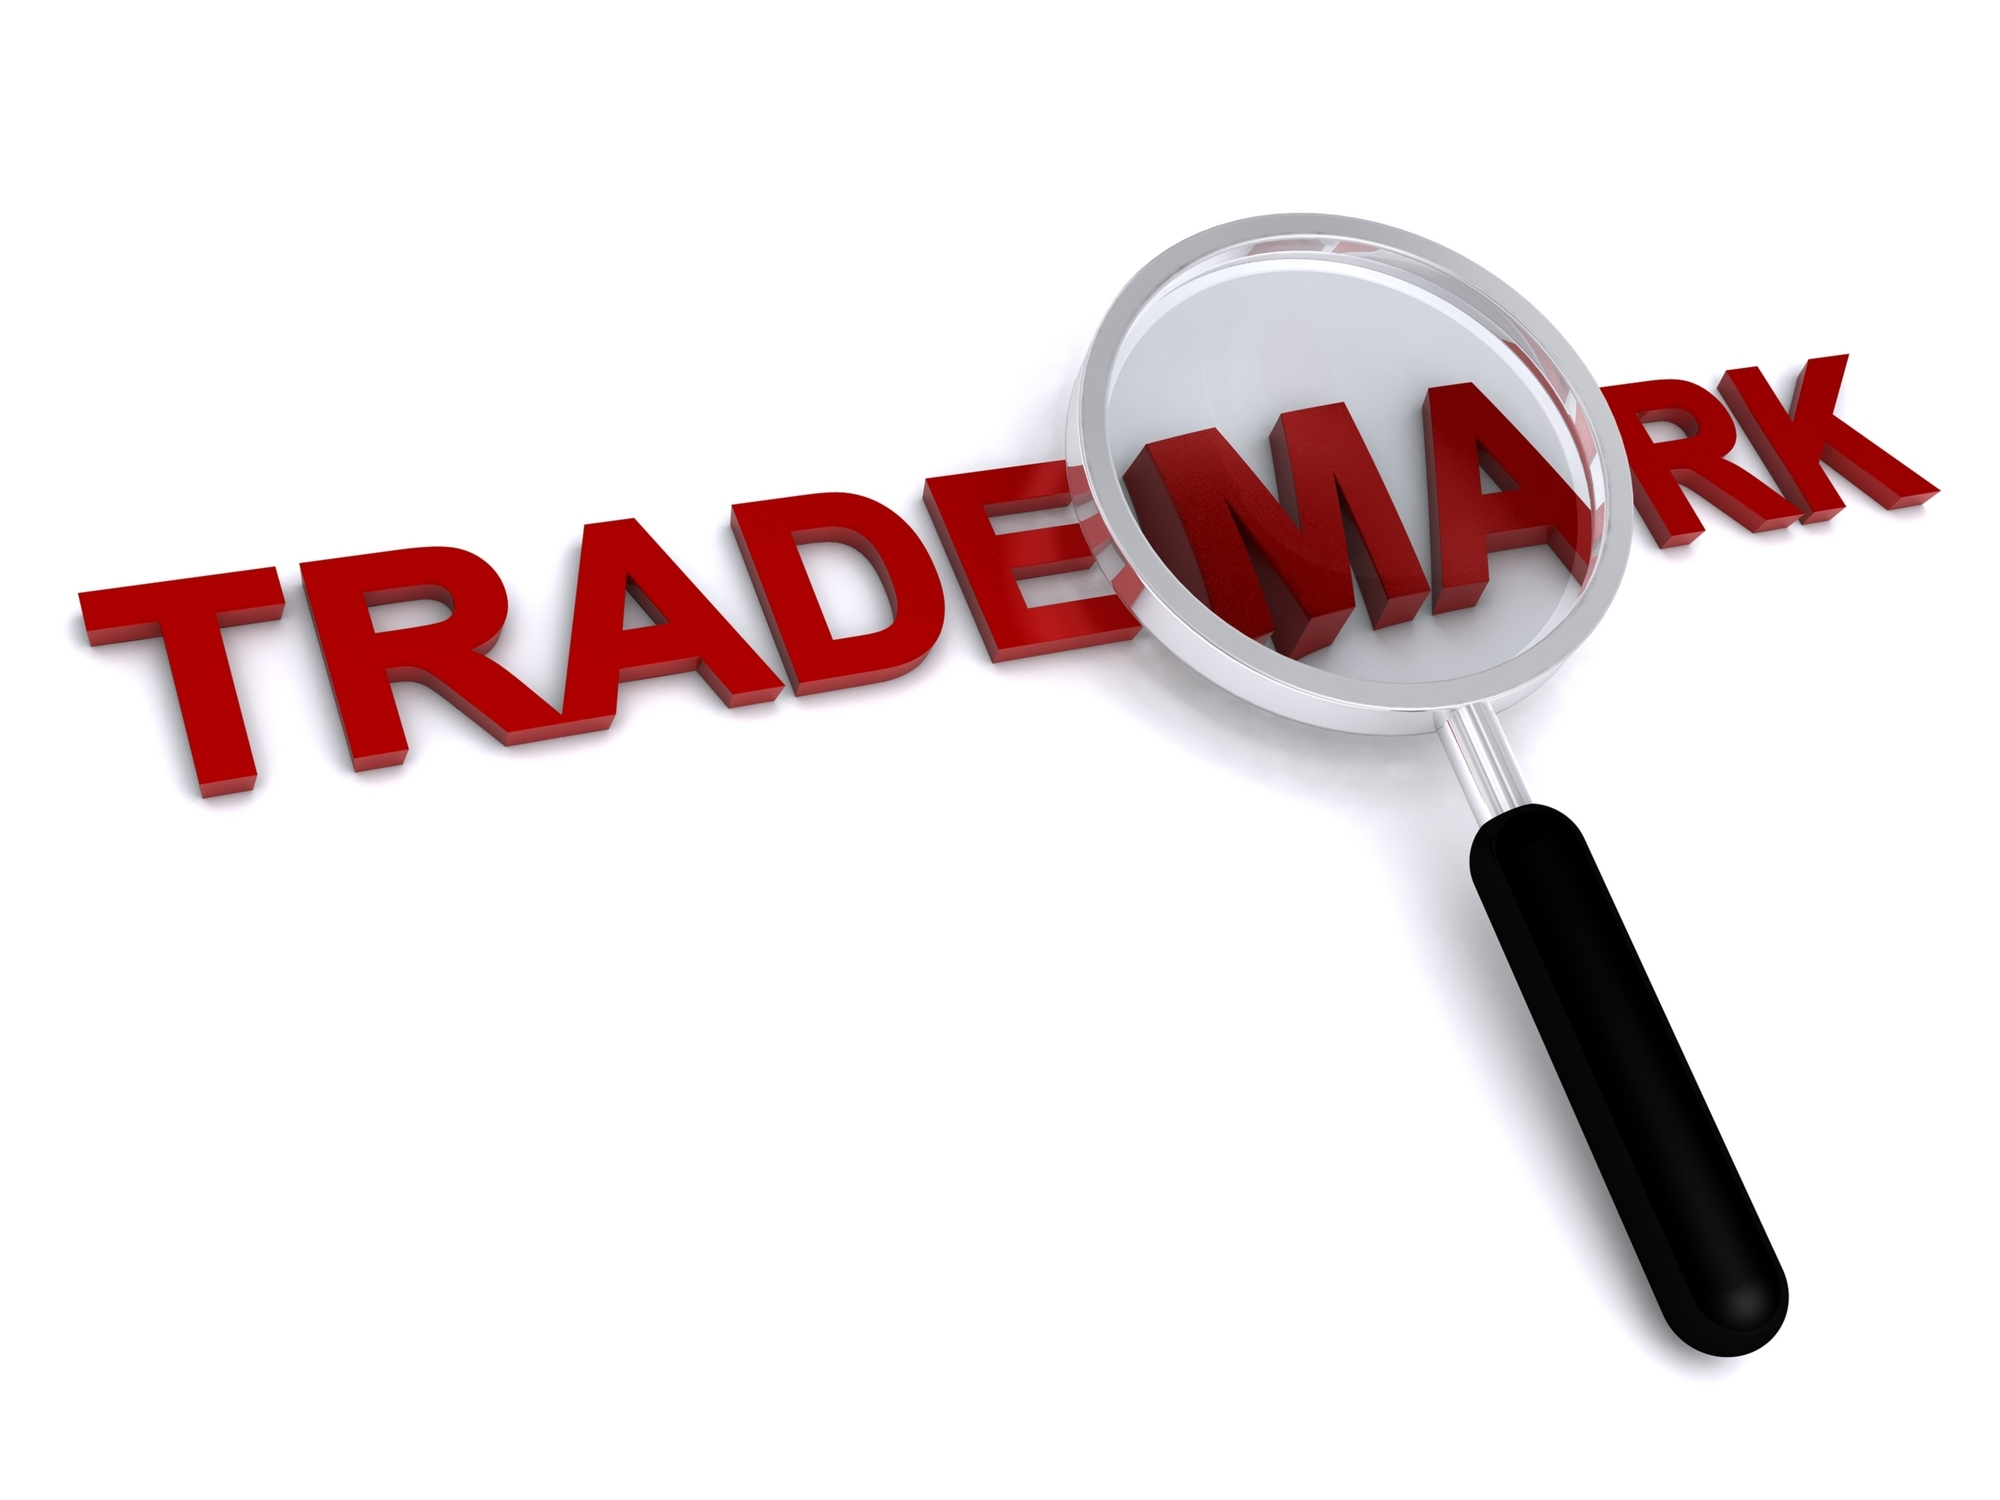 The Trademark Register Act With The Registered Trademark